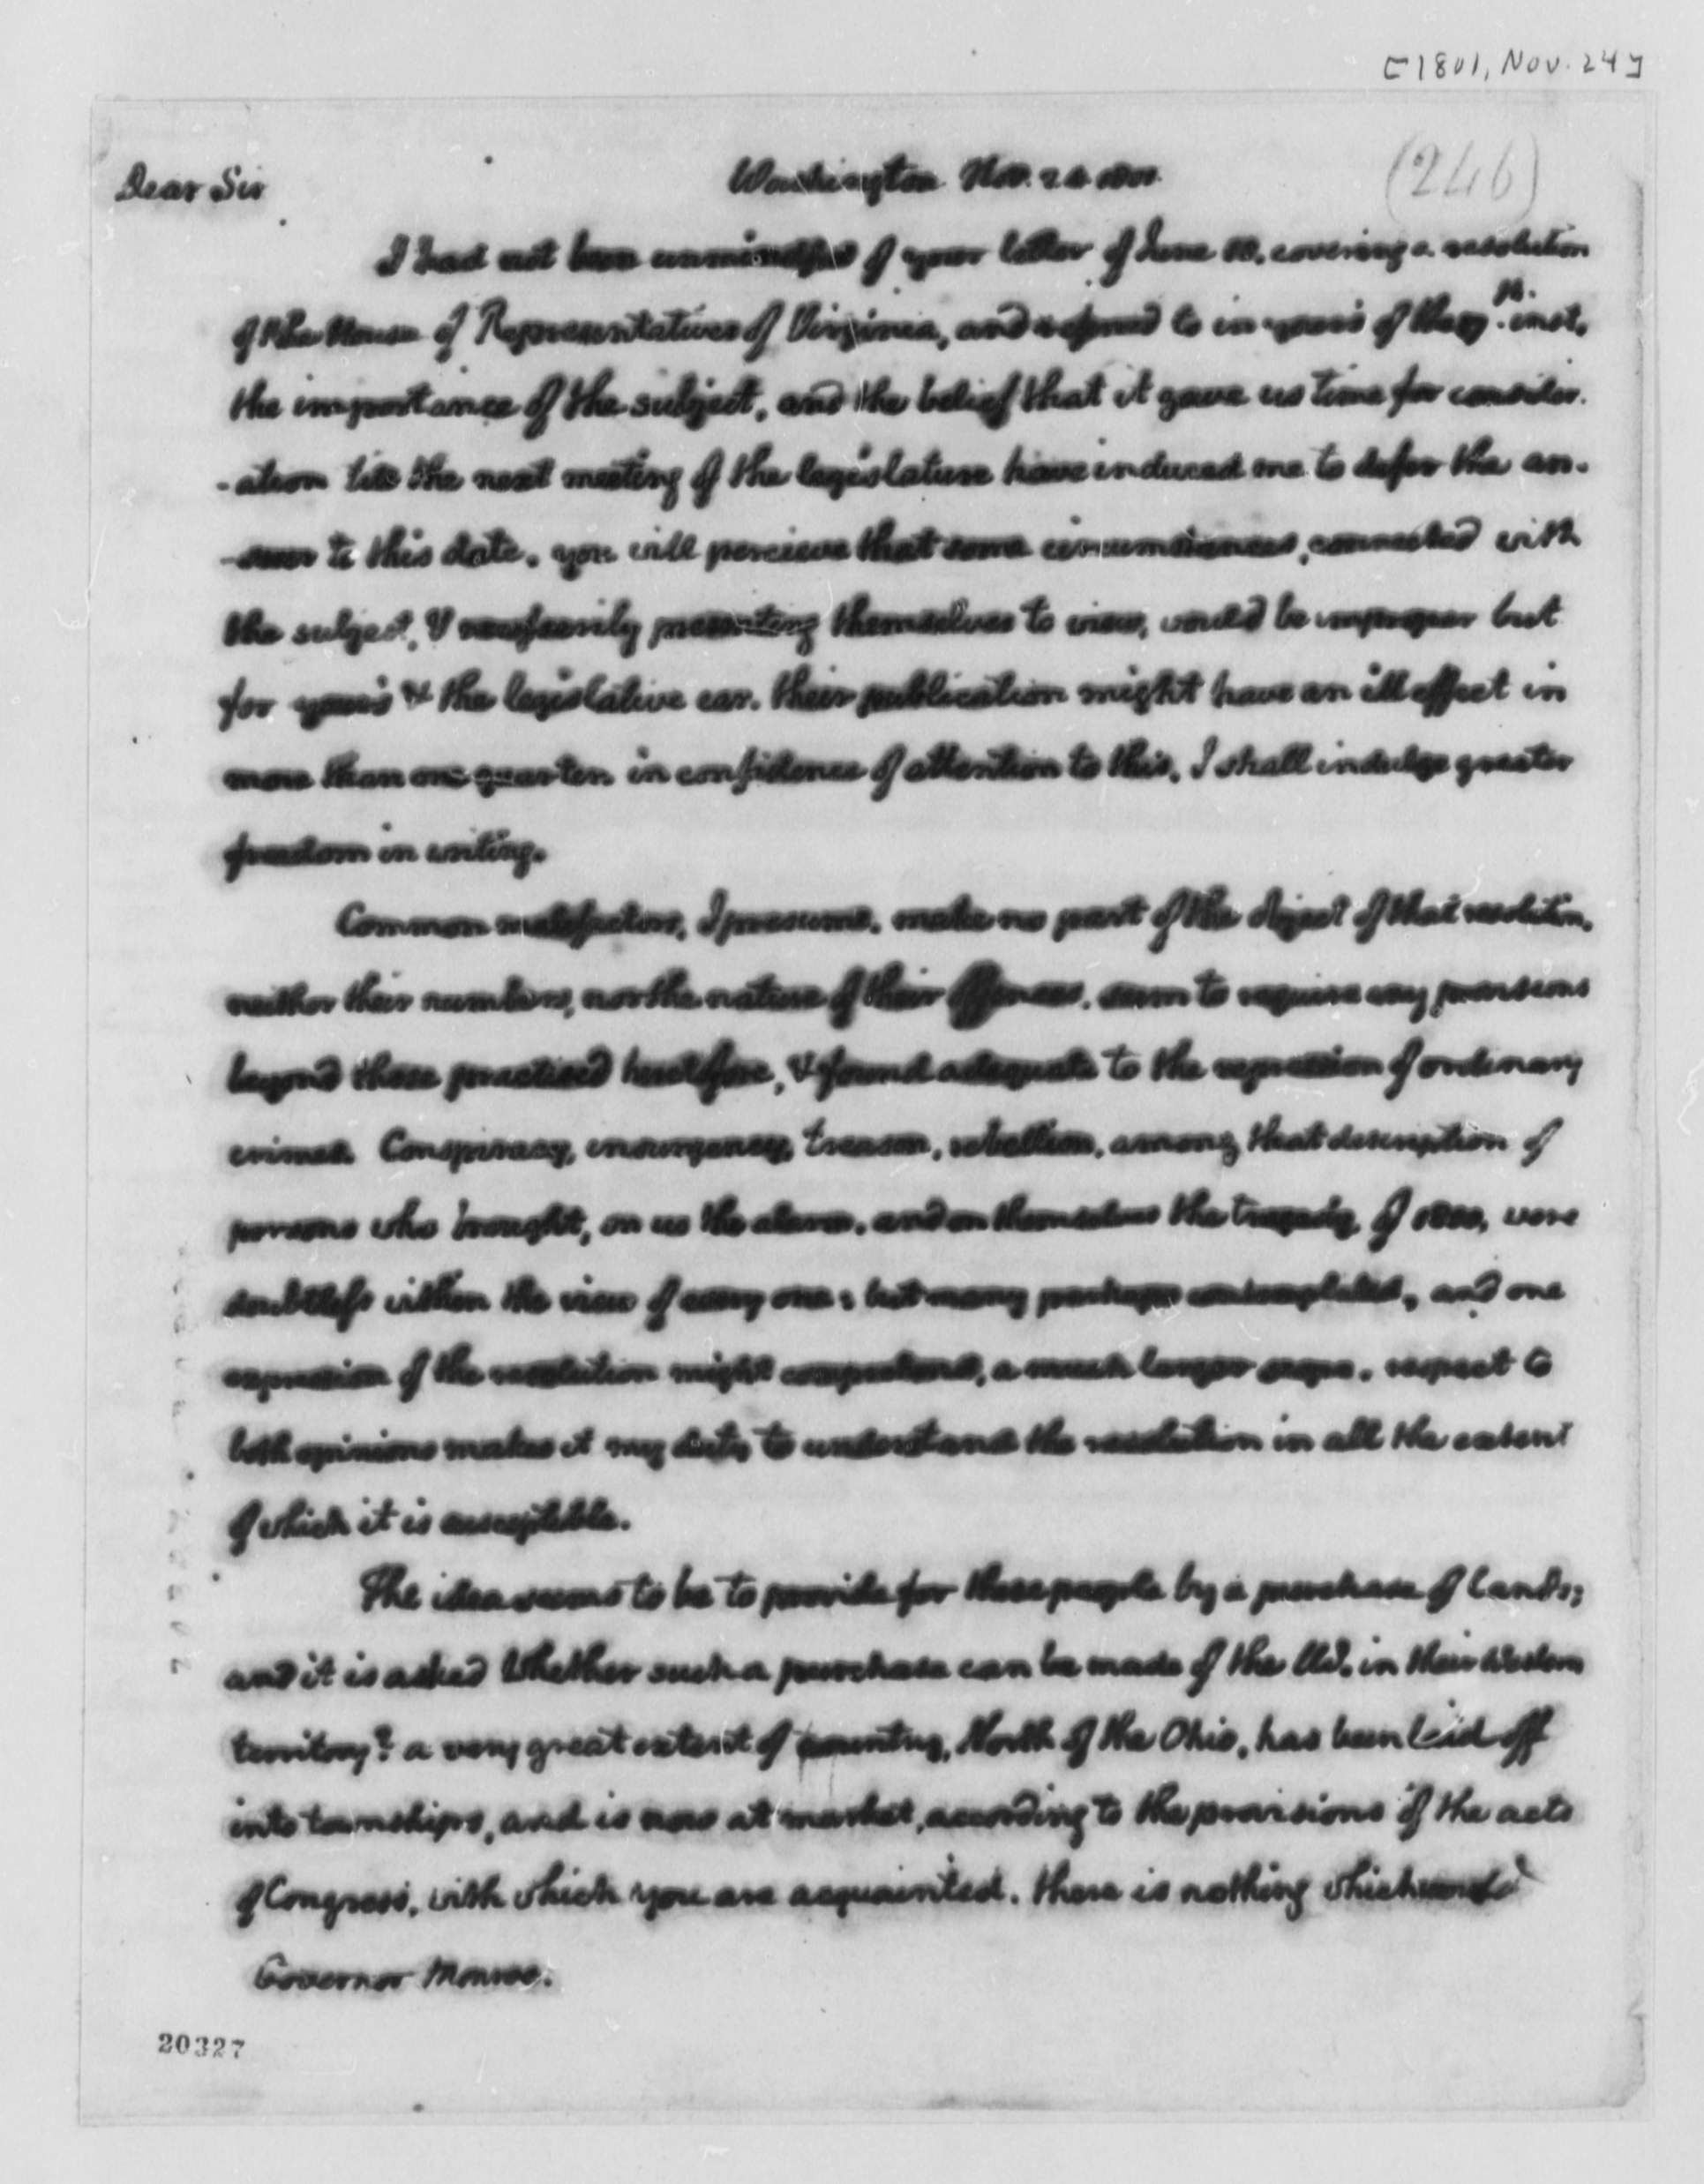 rhetorical analysis on benjamin banneker s letter to thomas jefferson Another banneker précis 1)benjamin banneker's persuasive letter (1791) asserts that slavery is an injustice that thomas jefferson should work to eradicate.